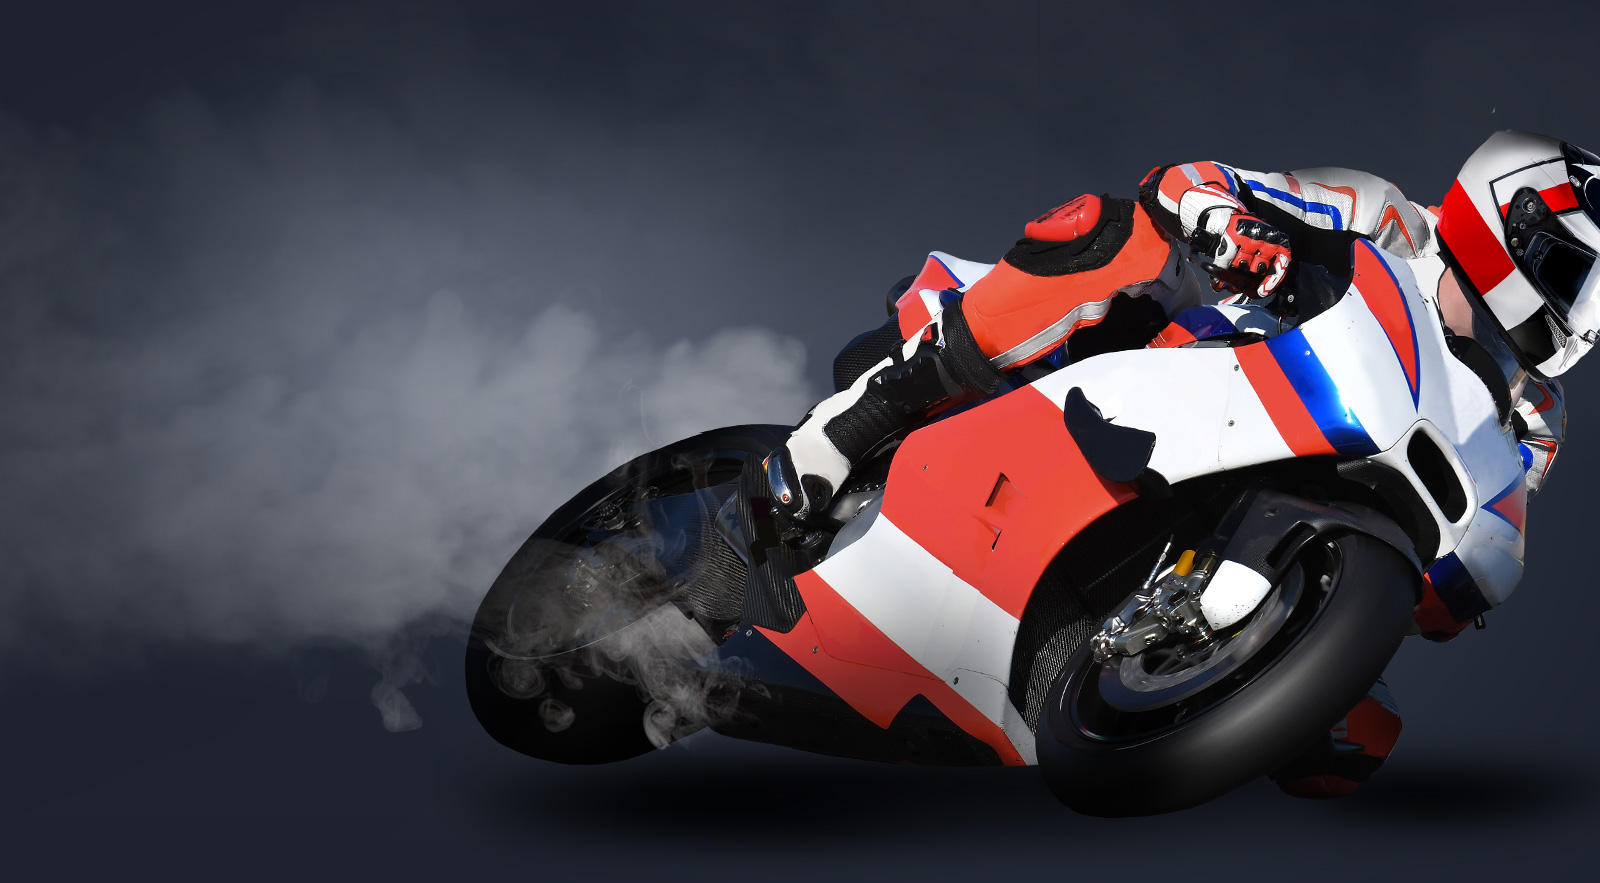 Motogp France - Free HD Wallpapers and 4K Wallpapers